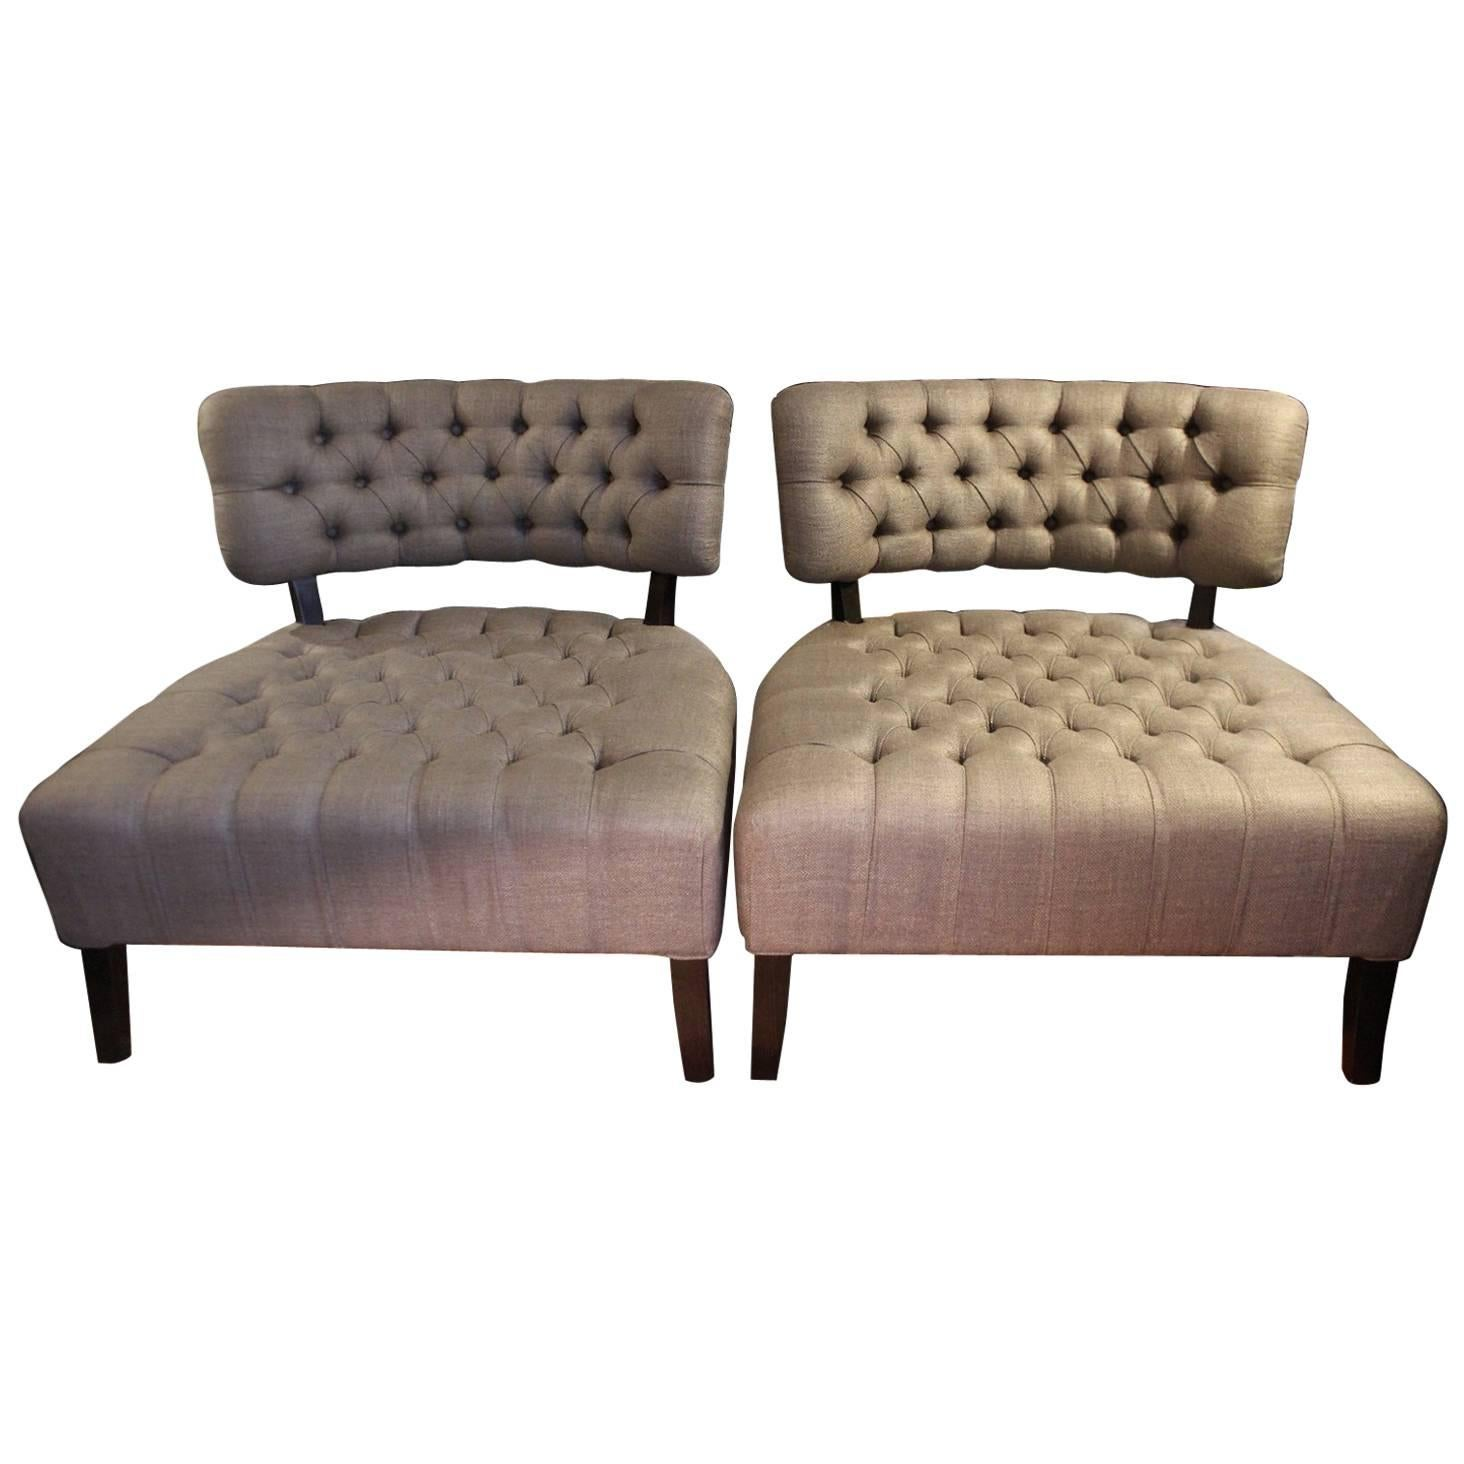 1950s-Style Armchairs